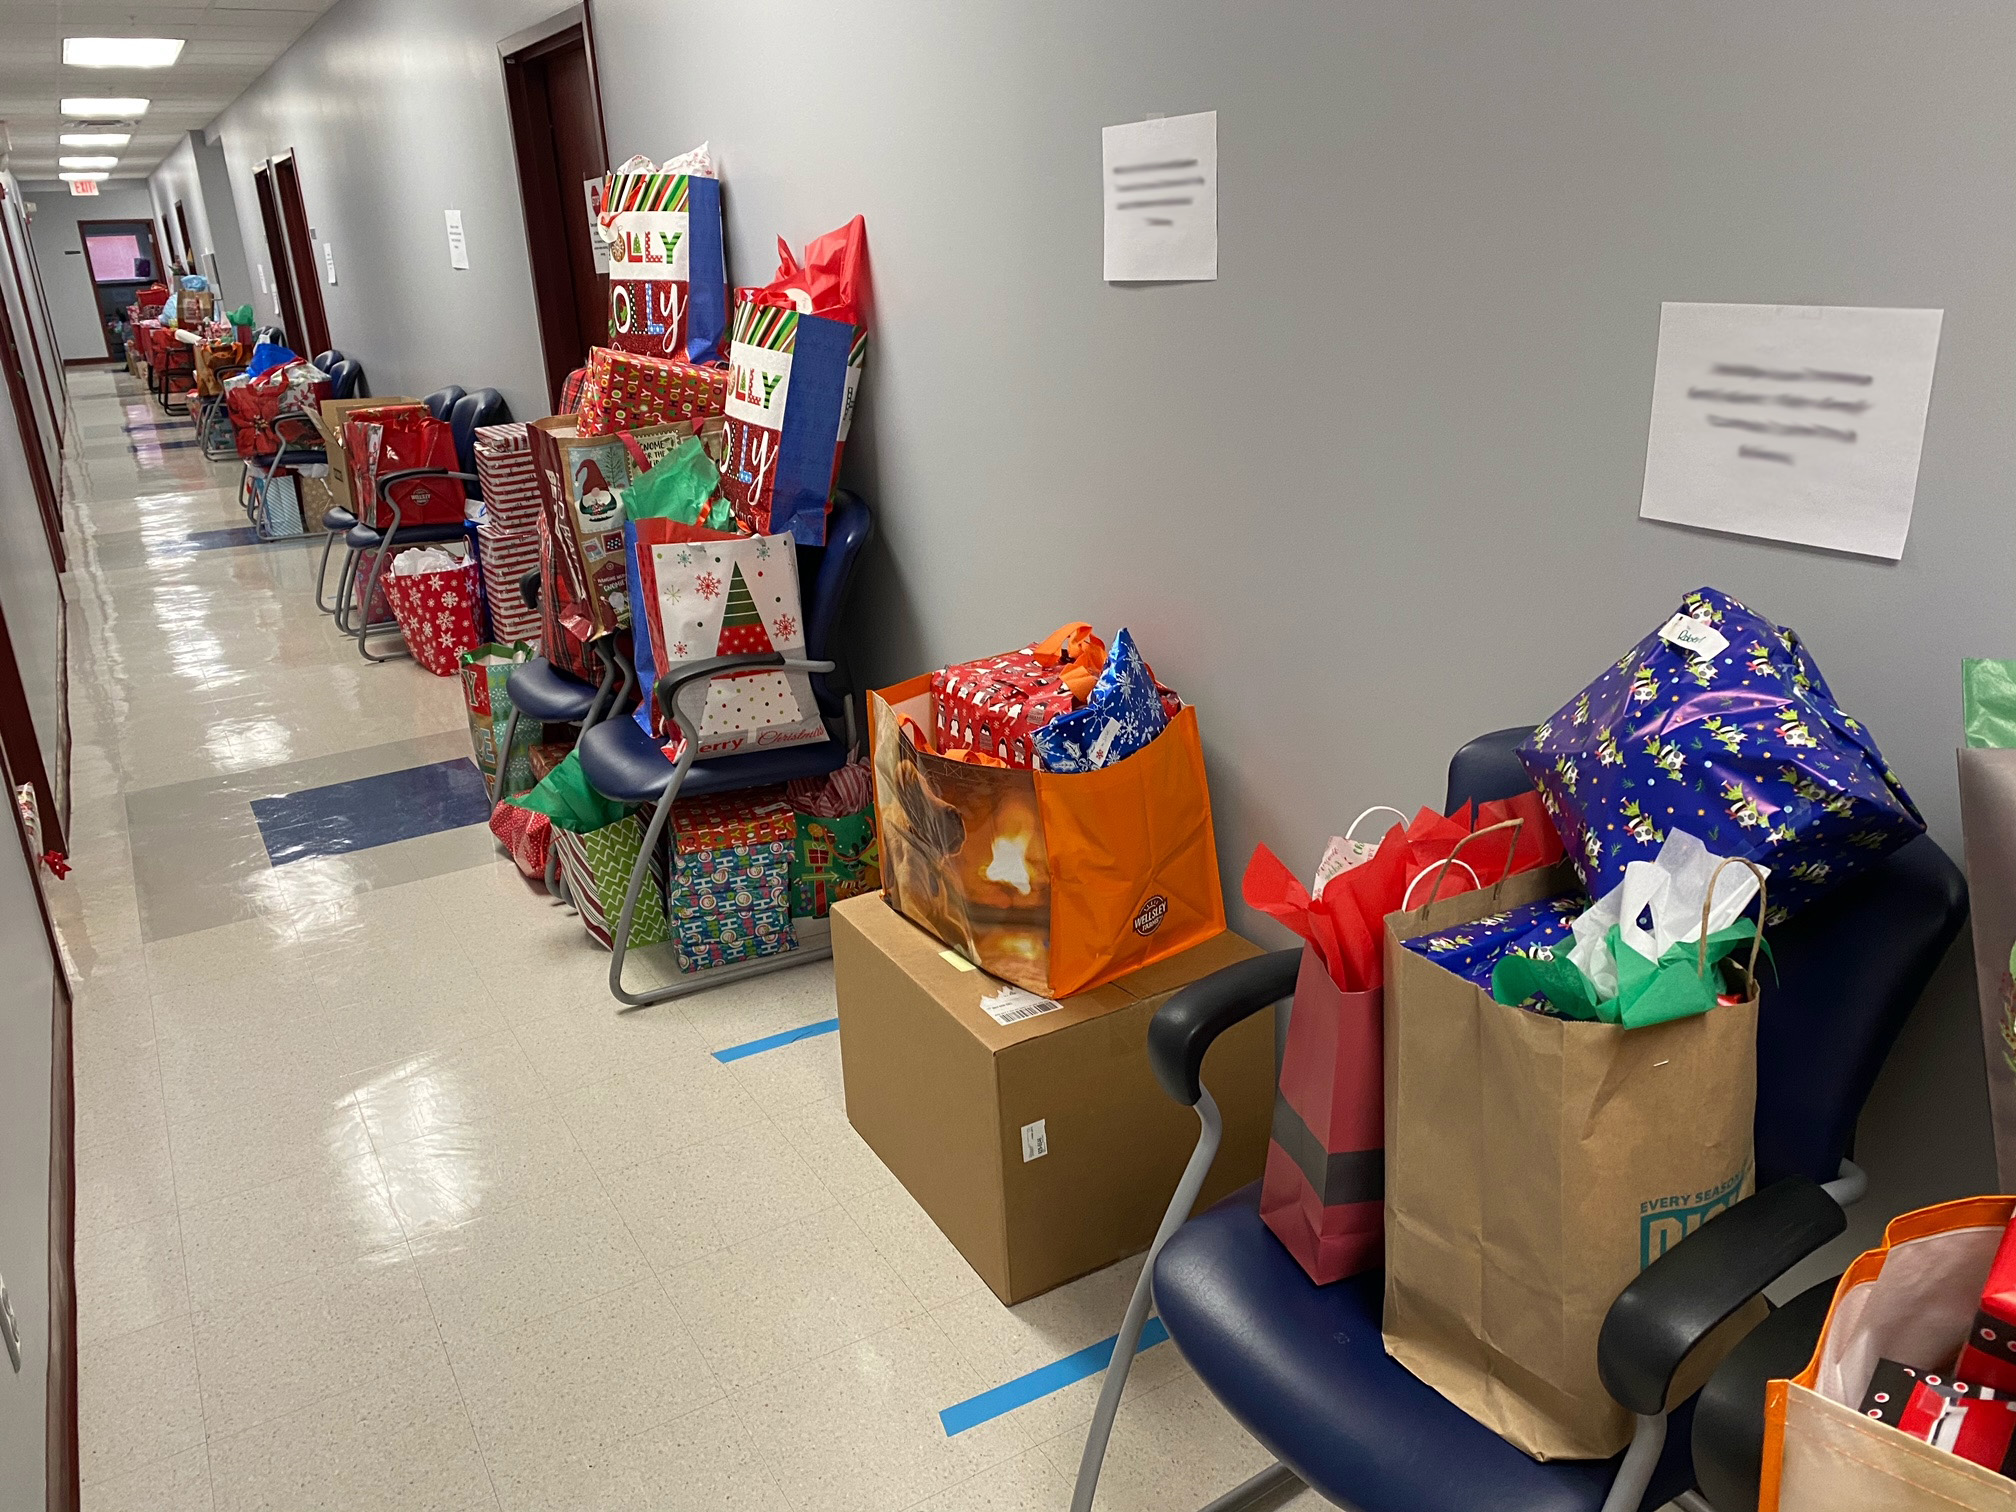 A hallway full of wrapped gifts donated to our campaign